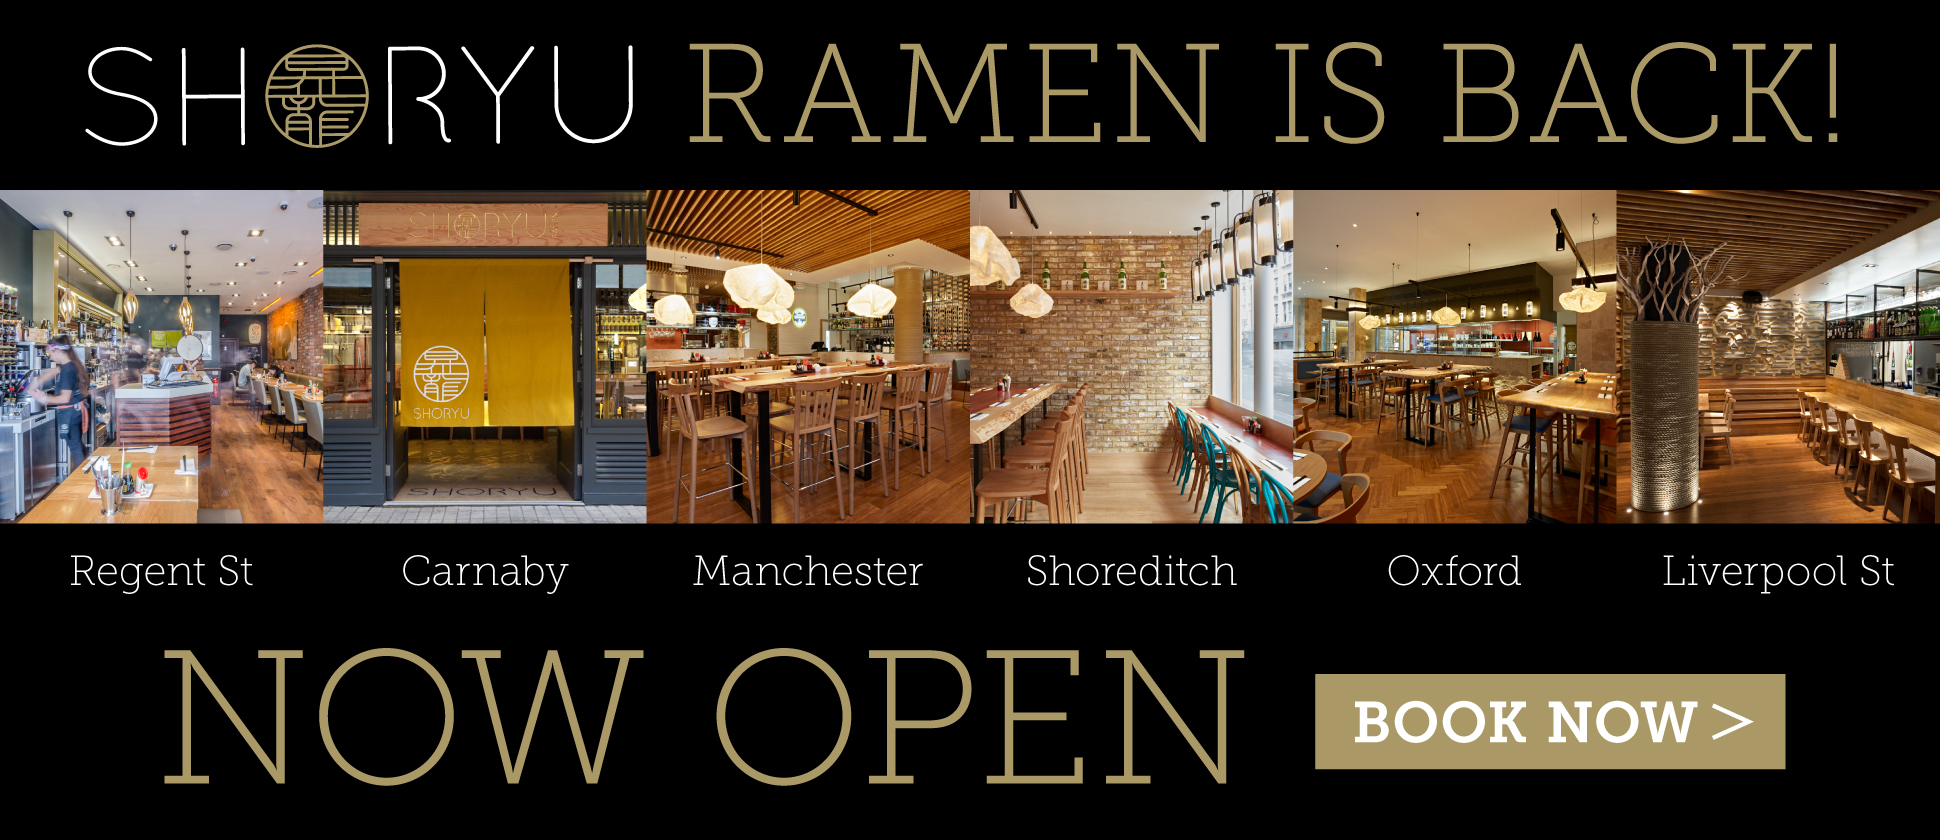 Shoryu Ramen Is Back! - Restaurant Openings